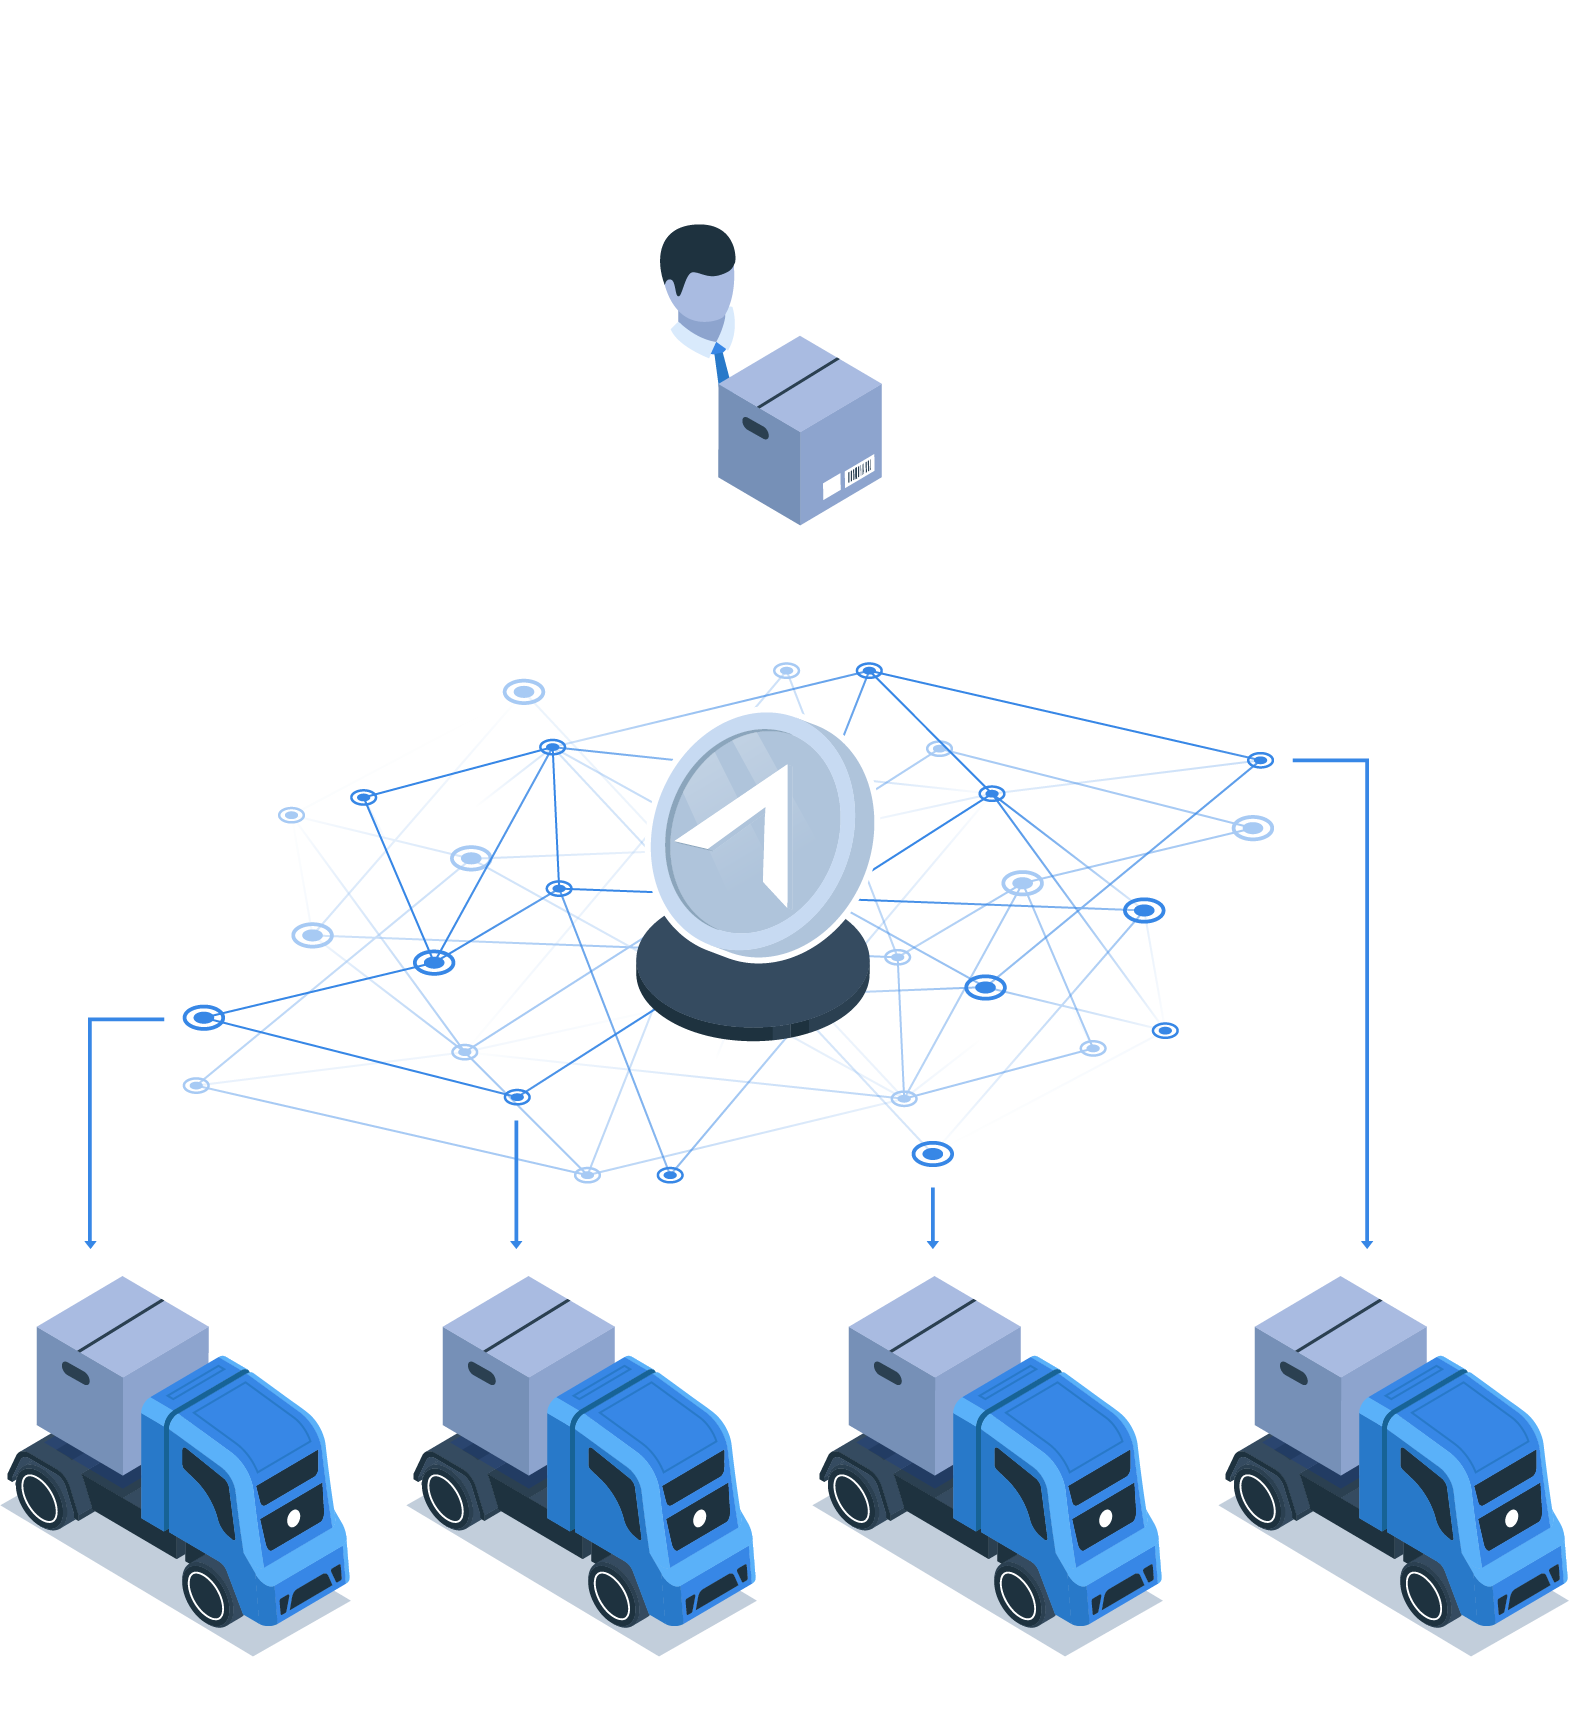 Utilizing the LaneAxis Direct Blockchain Network, shippers can bypass brokers and broadcast